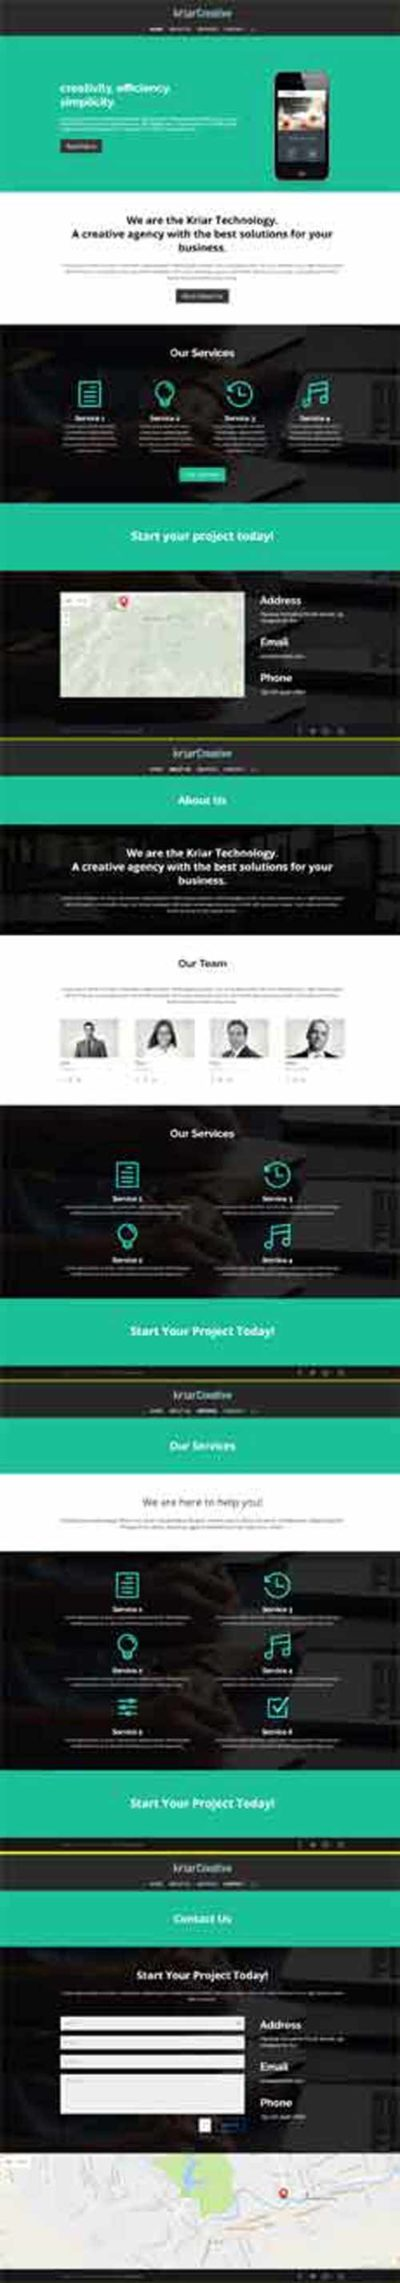 kriar creative Divi layout